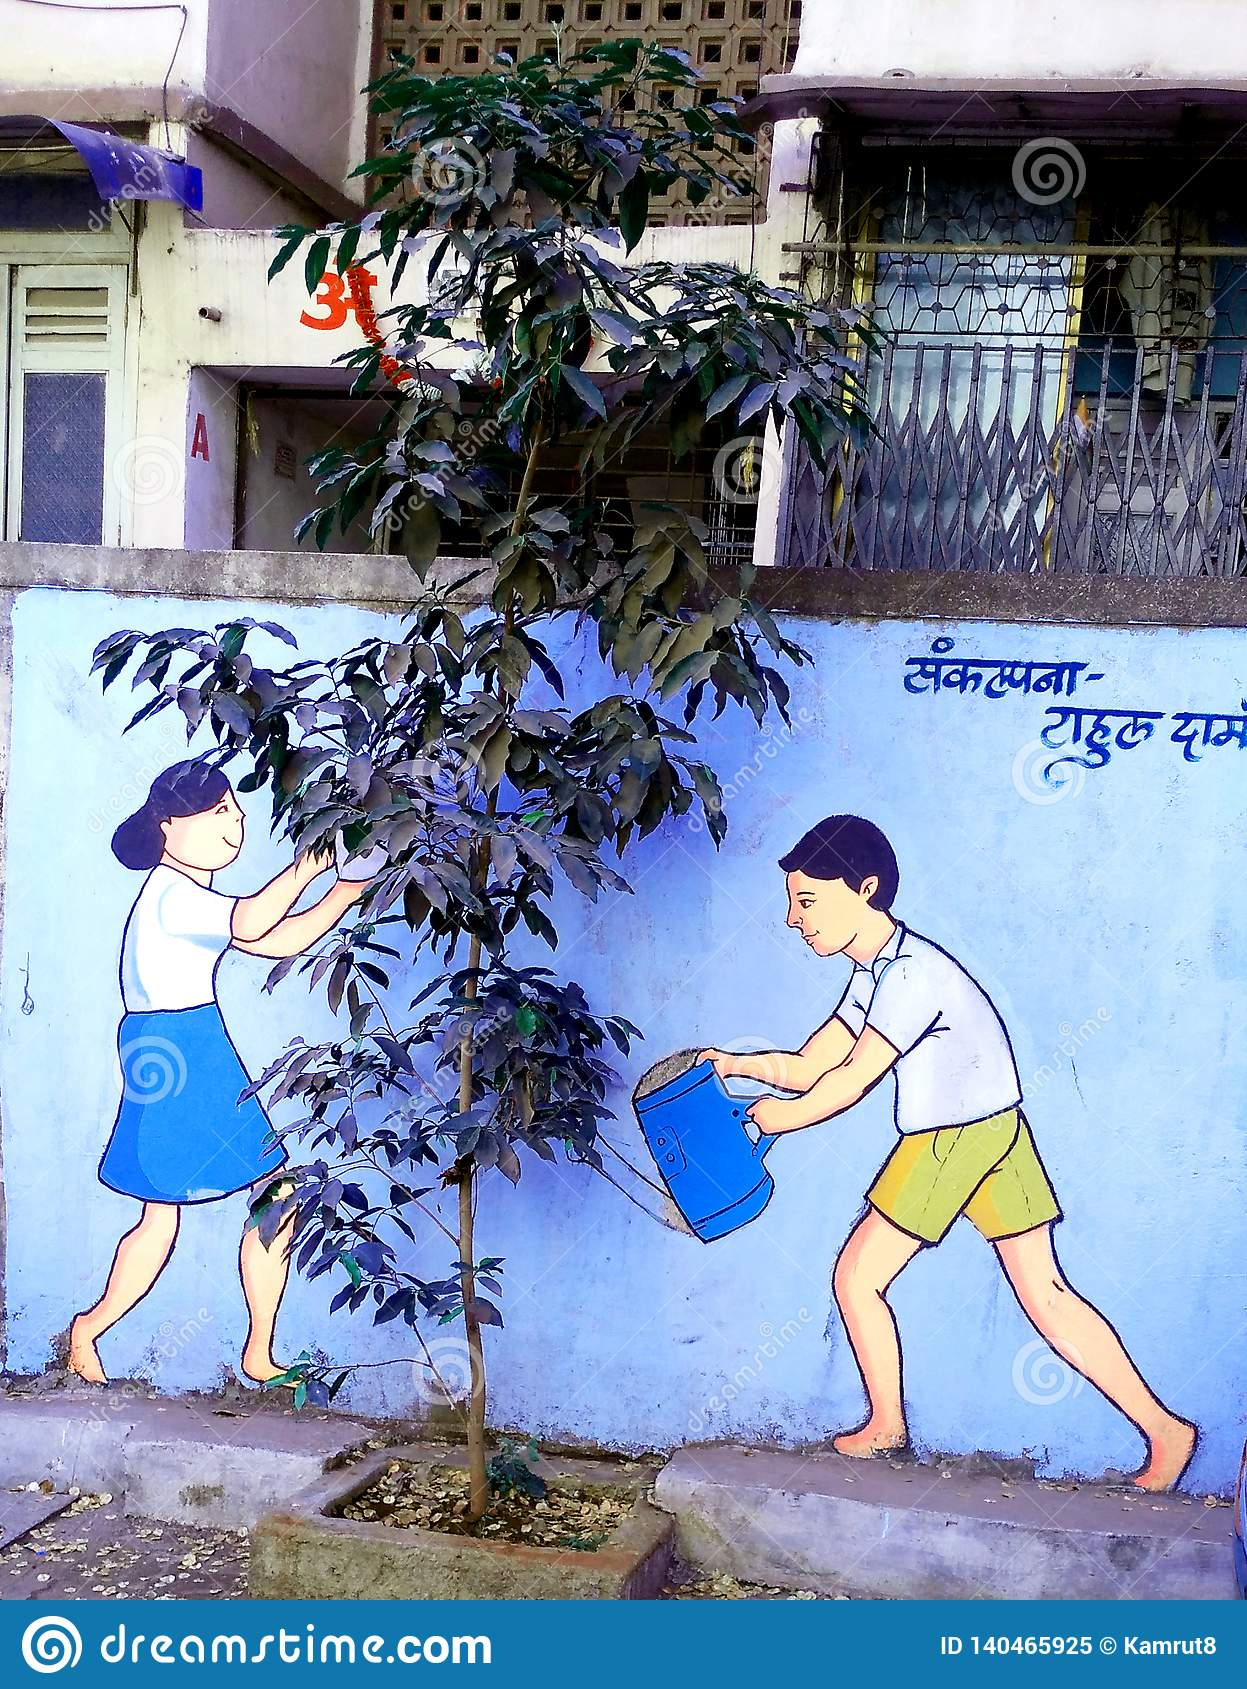 Real plant and smart painting to save environment slogan